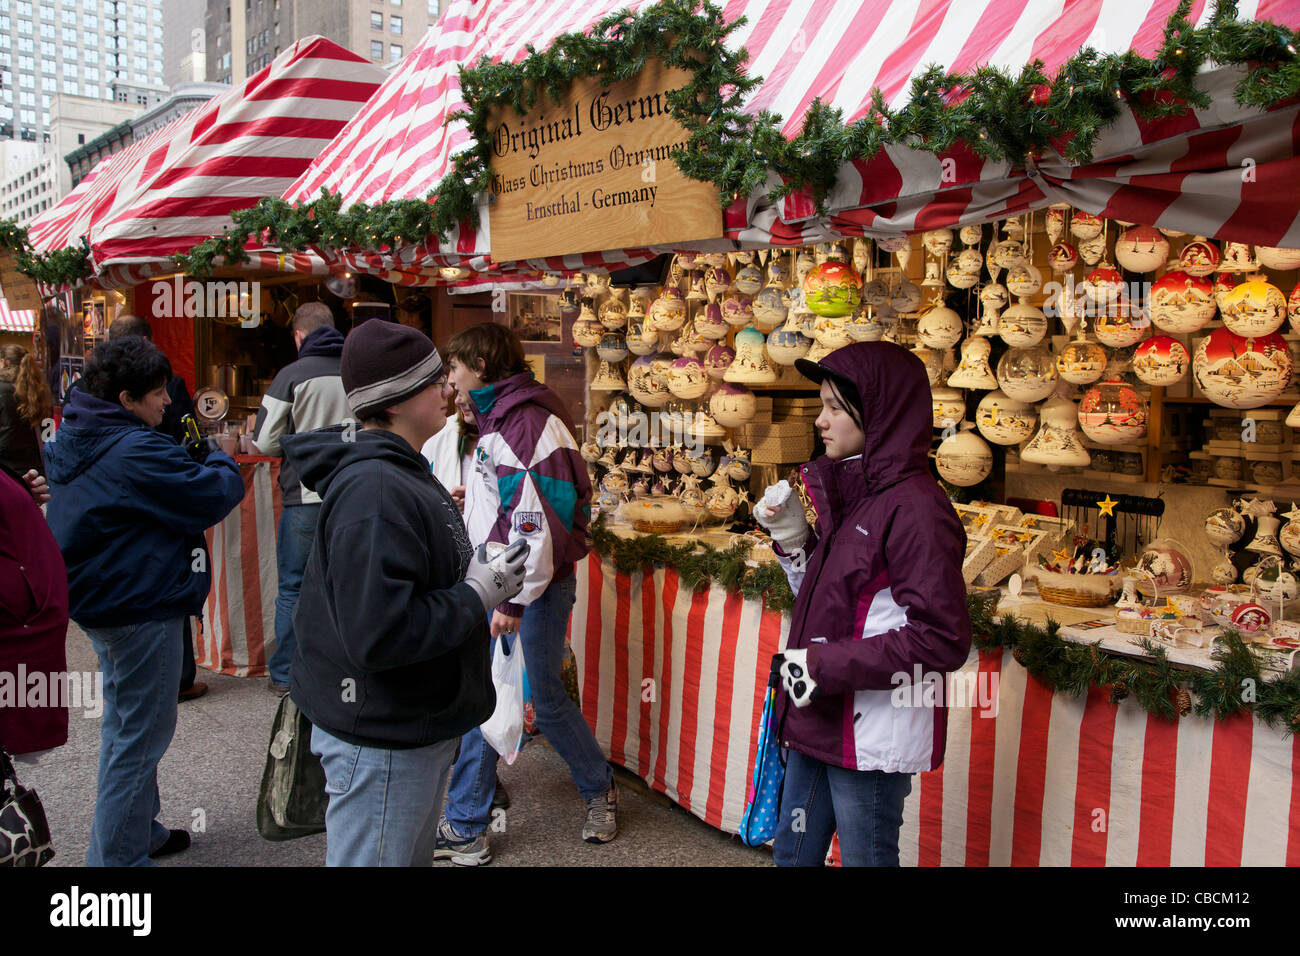 german christmas ornaments for sale chicago christkindlmarket 2011 stock image